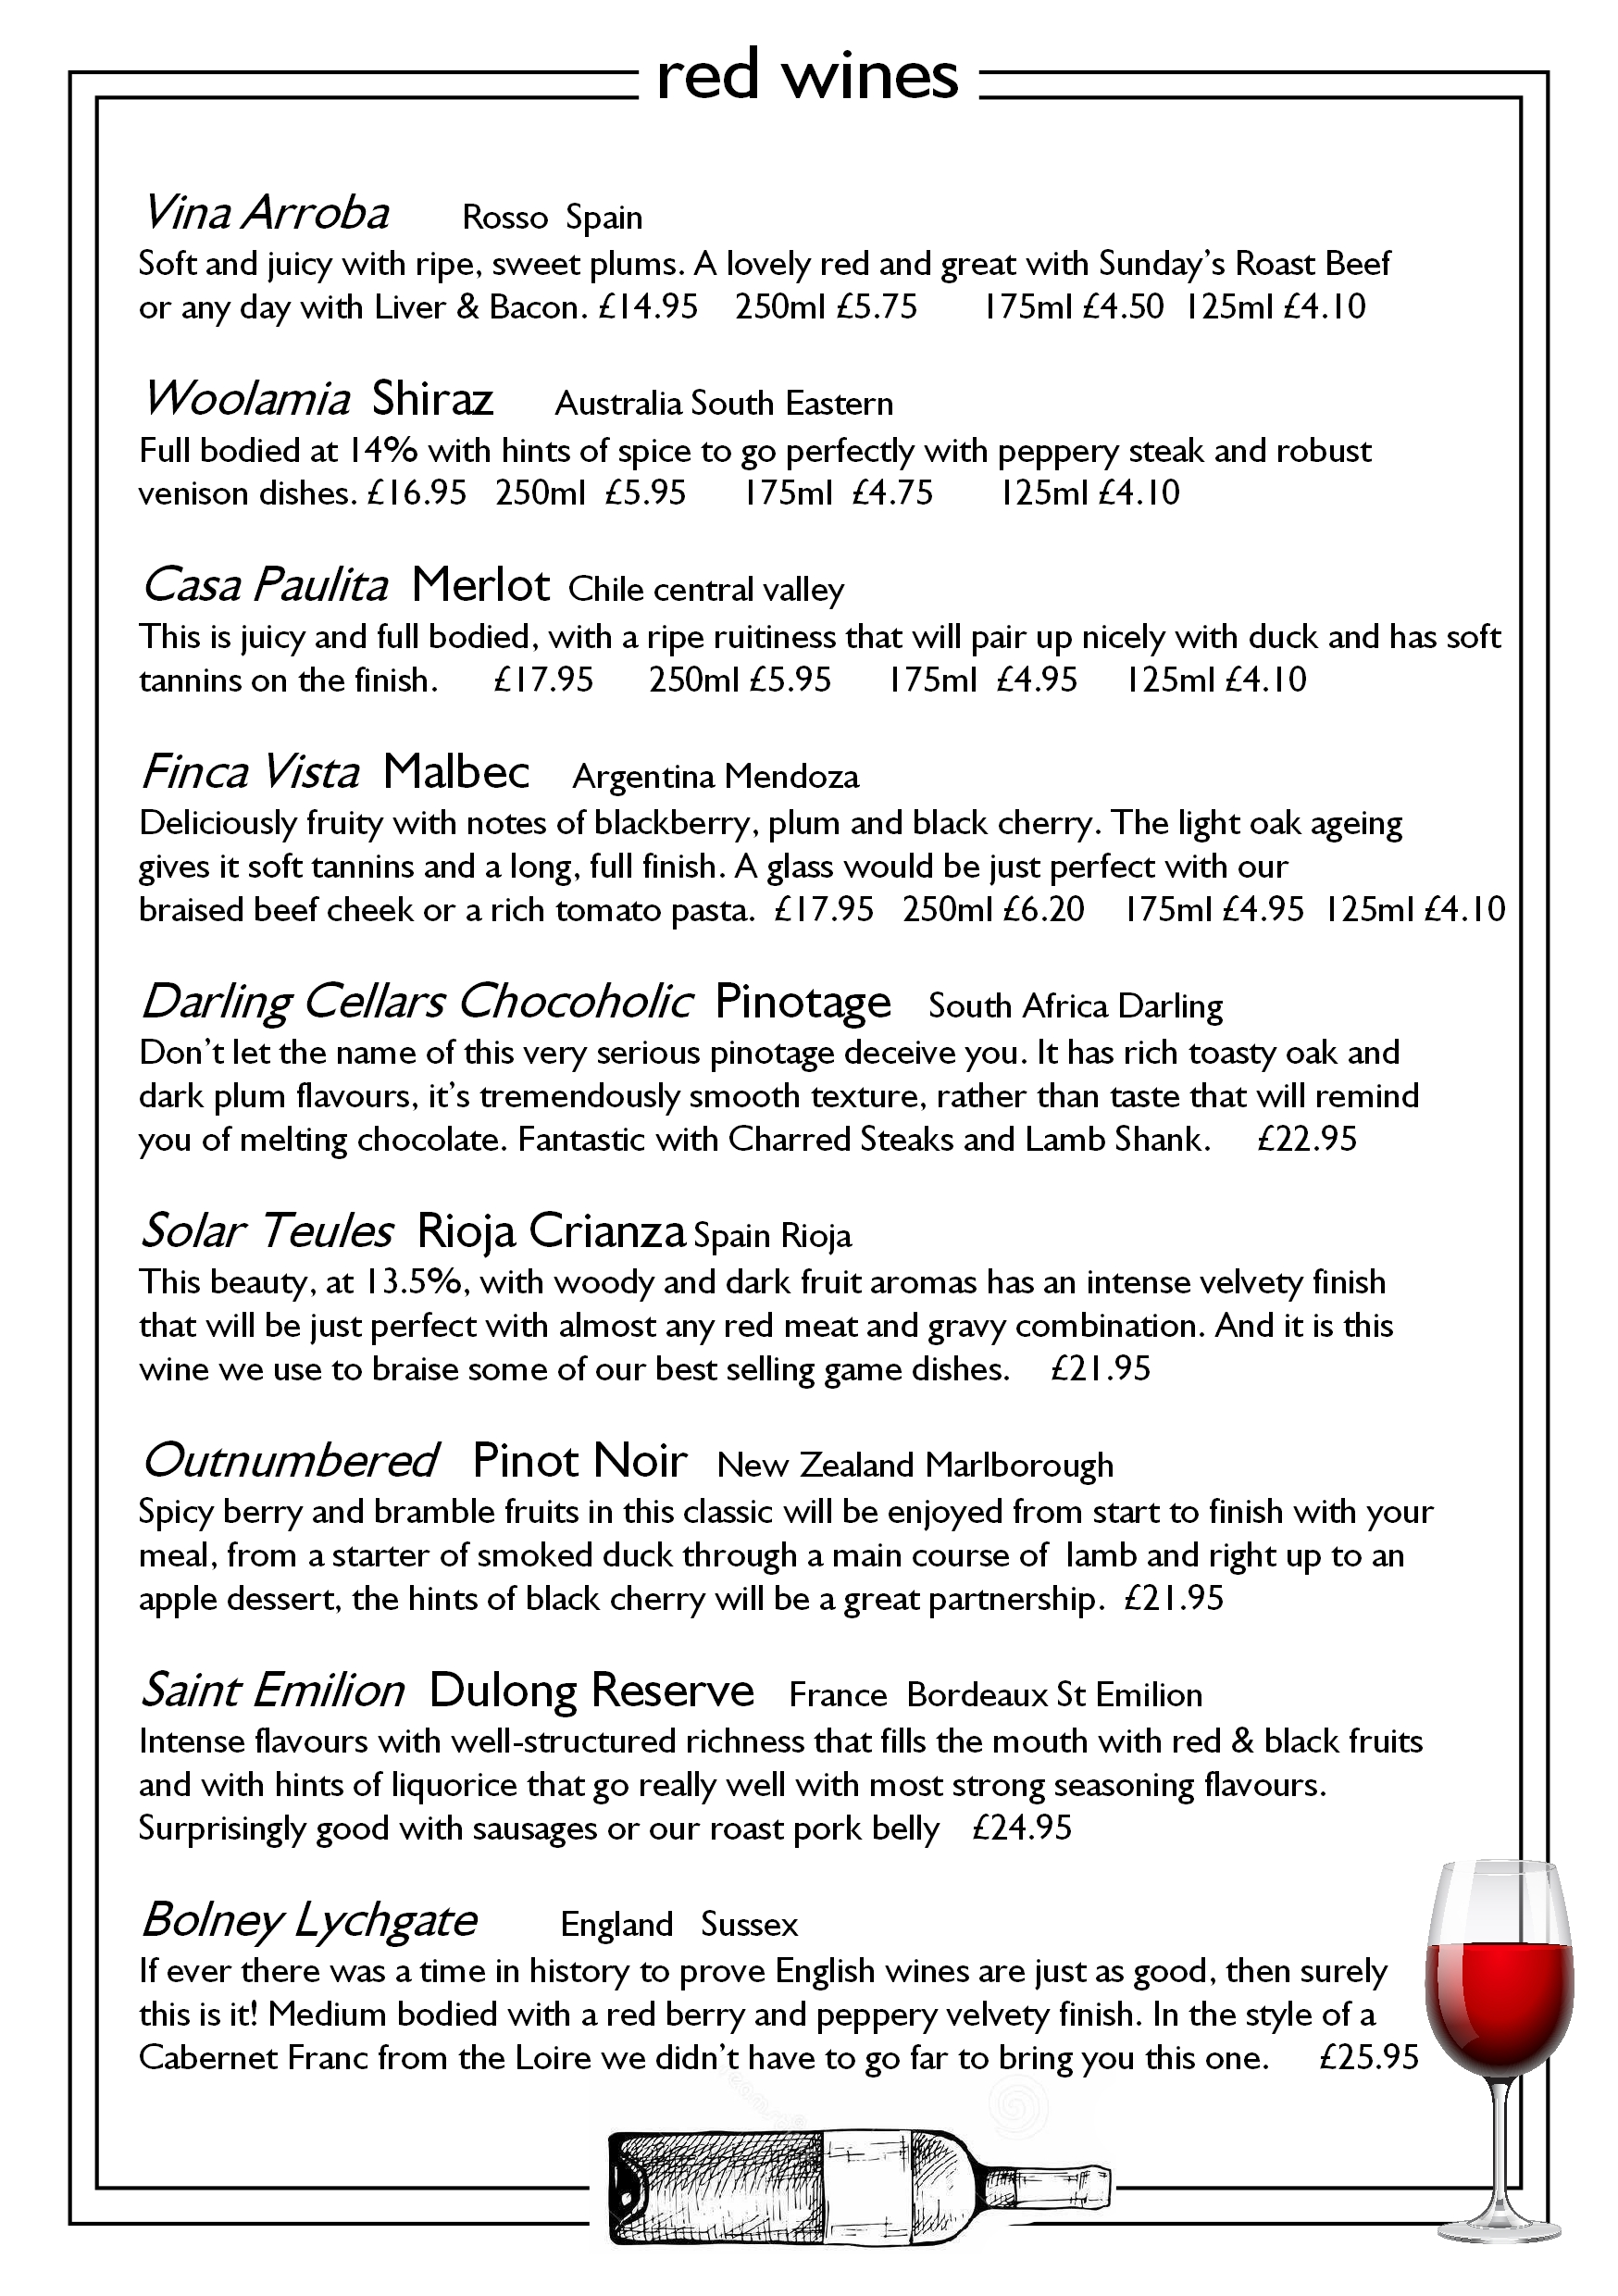 page 9 red wines callenders restaurant hailsham